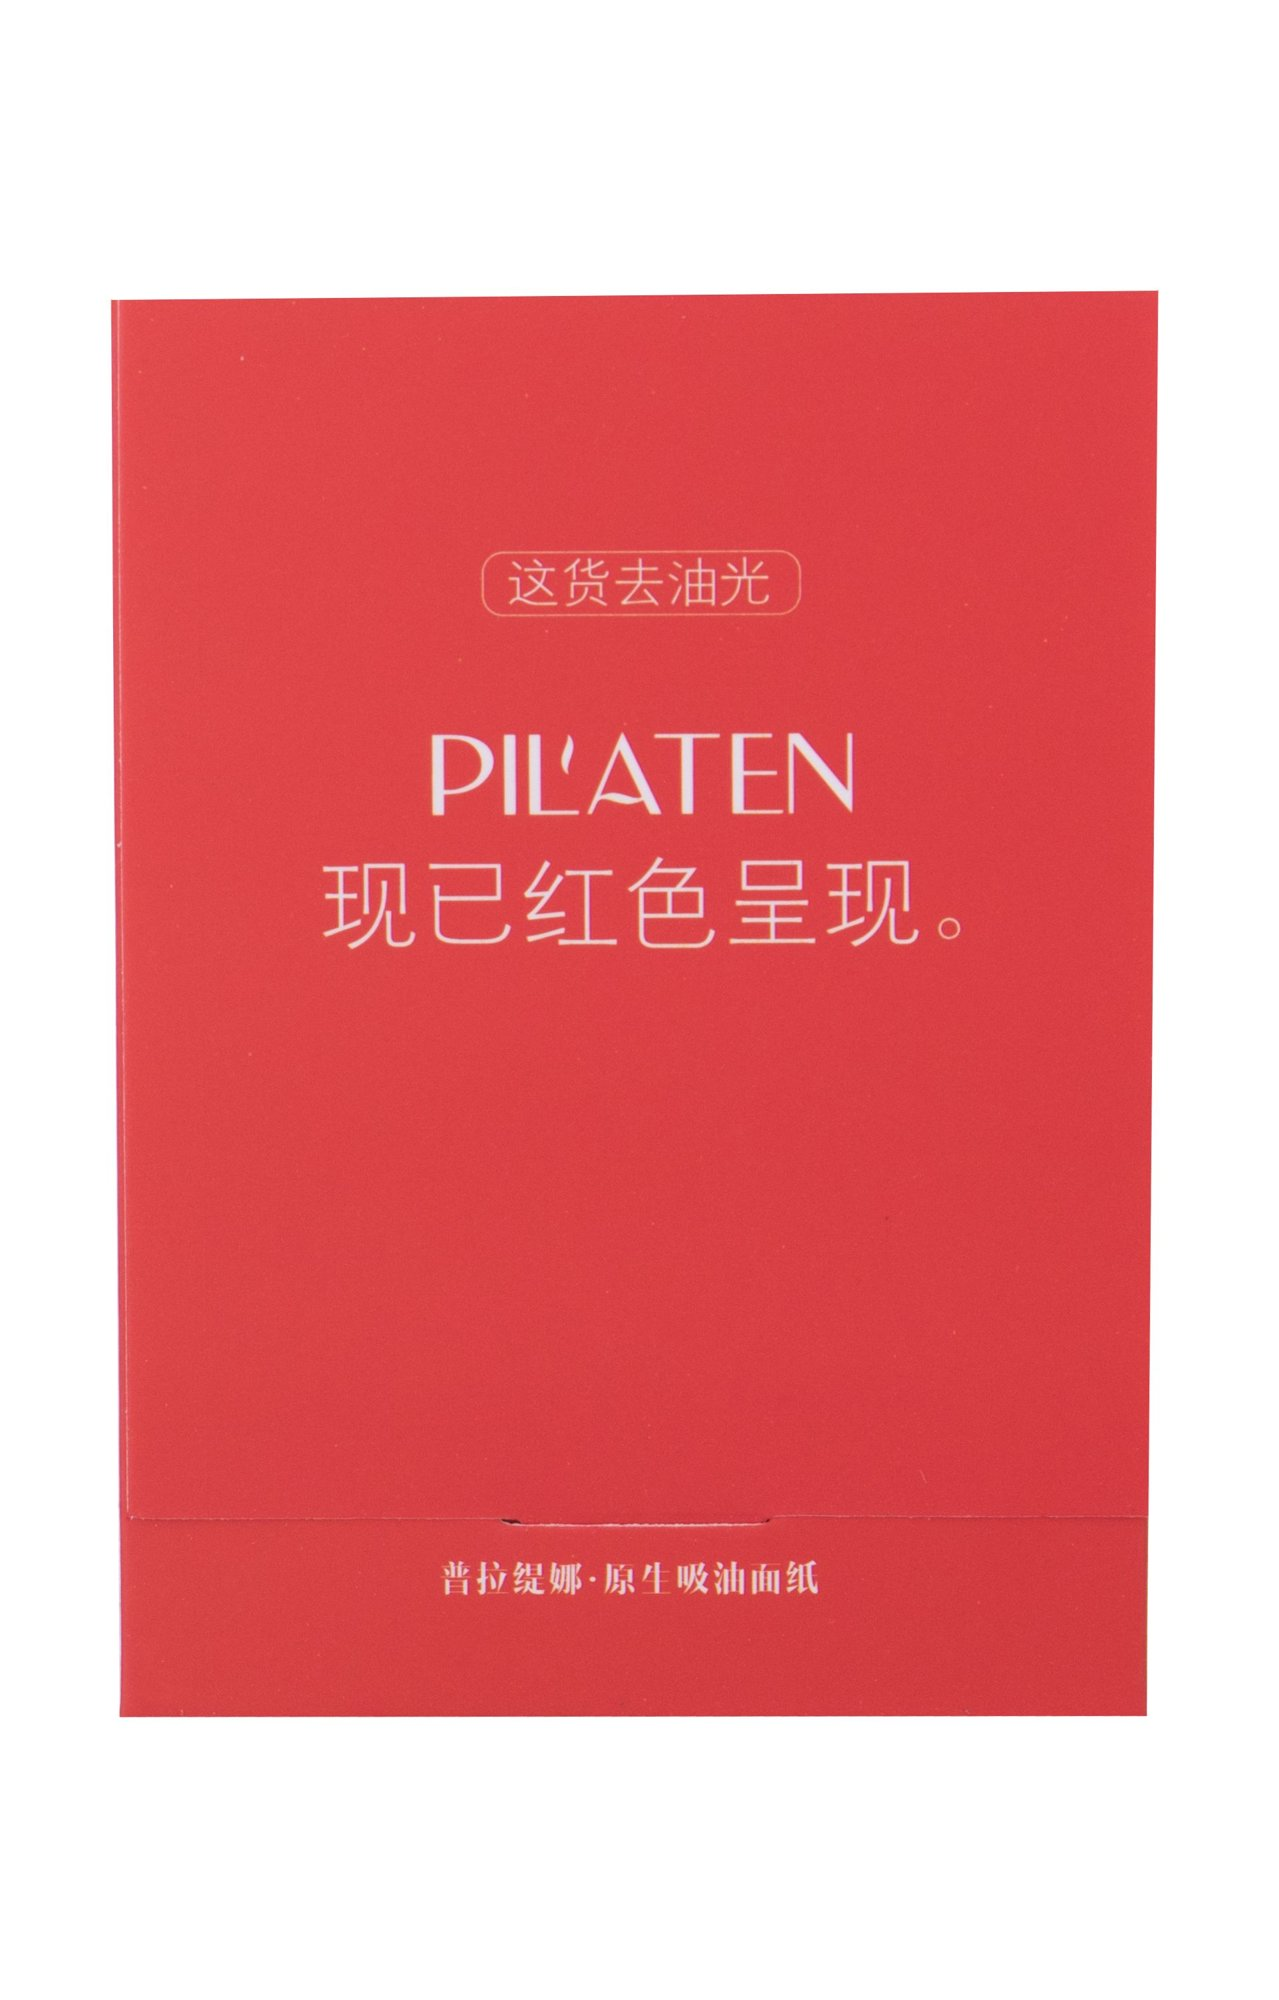 Pilaten Native Blotting Paper Control Red, Arctisztító kendő 100ks